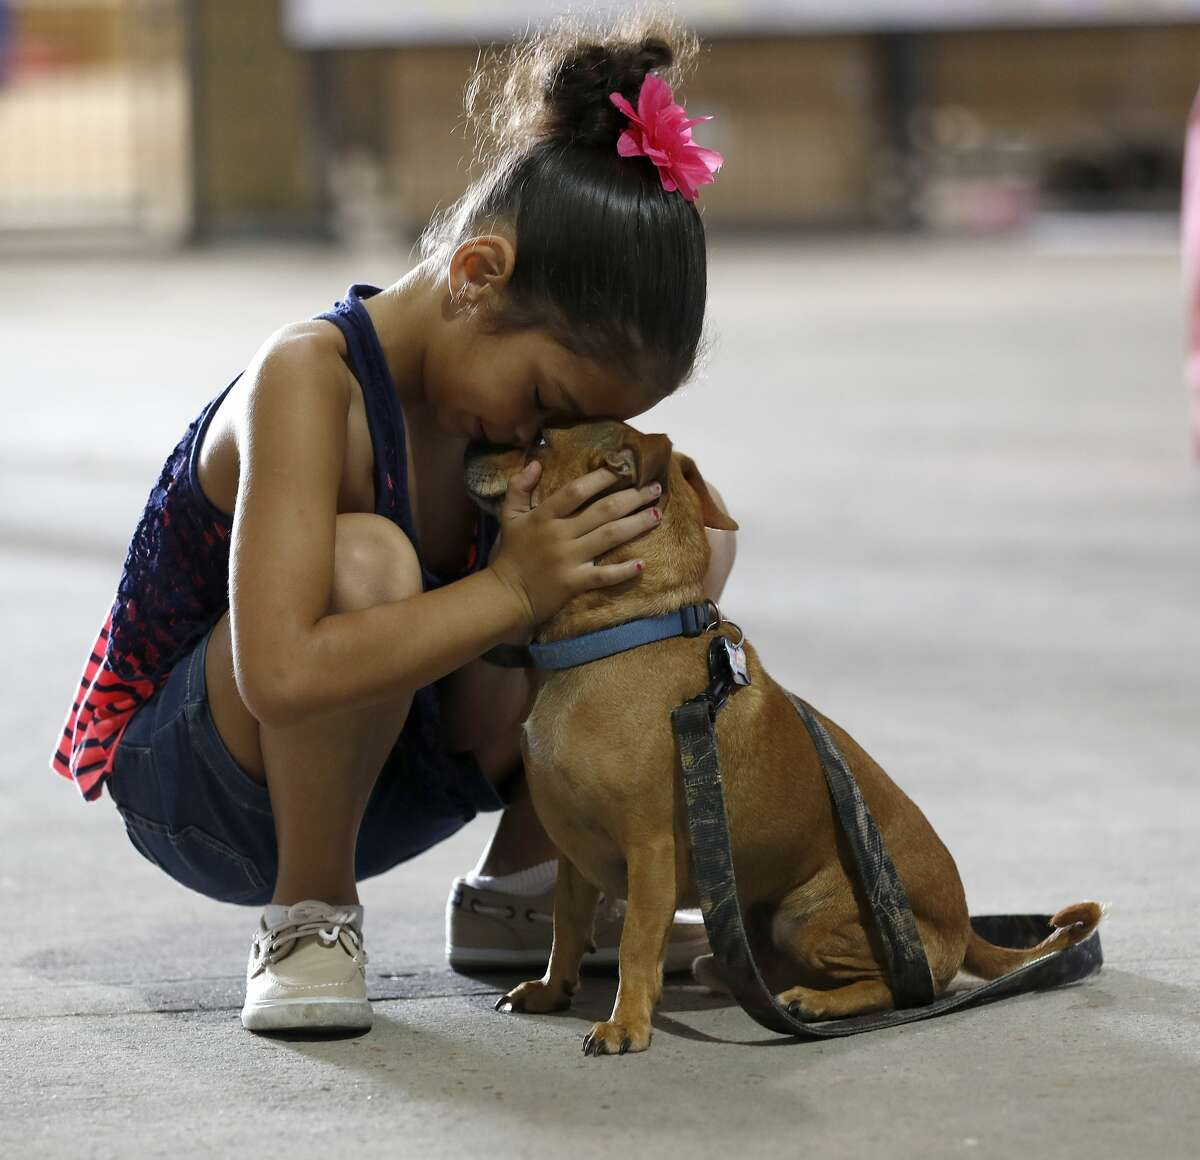 Reniah Knight, 7, of Vidor, hugs her dog, Buster, who they located at the Houston SPCA, but they continued to look for thier two other missing dogs in the Pet Reunion Pavilion inside of NRG Arena, Wednesday, Sept. 13, 2017, in Houston. They found one of their dogs at the SPCA, but the other two who were supposed to be there, where missing. Best Friends Animal Society, based in Utah, has partnered with the Harris County Public Health's Animal Shelter, Austin Pets Alive!, Houston Pets Alive!, and Houston PetSet. This will act as a hub for families trying to locate their pets displaced by Tropical Storm Harvey.